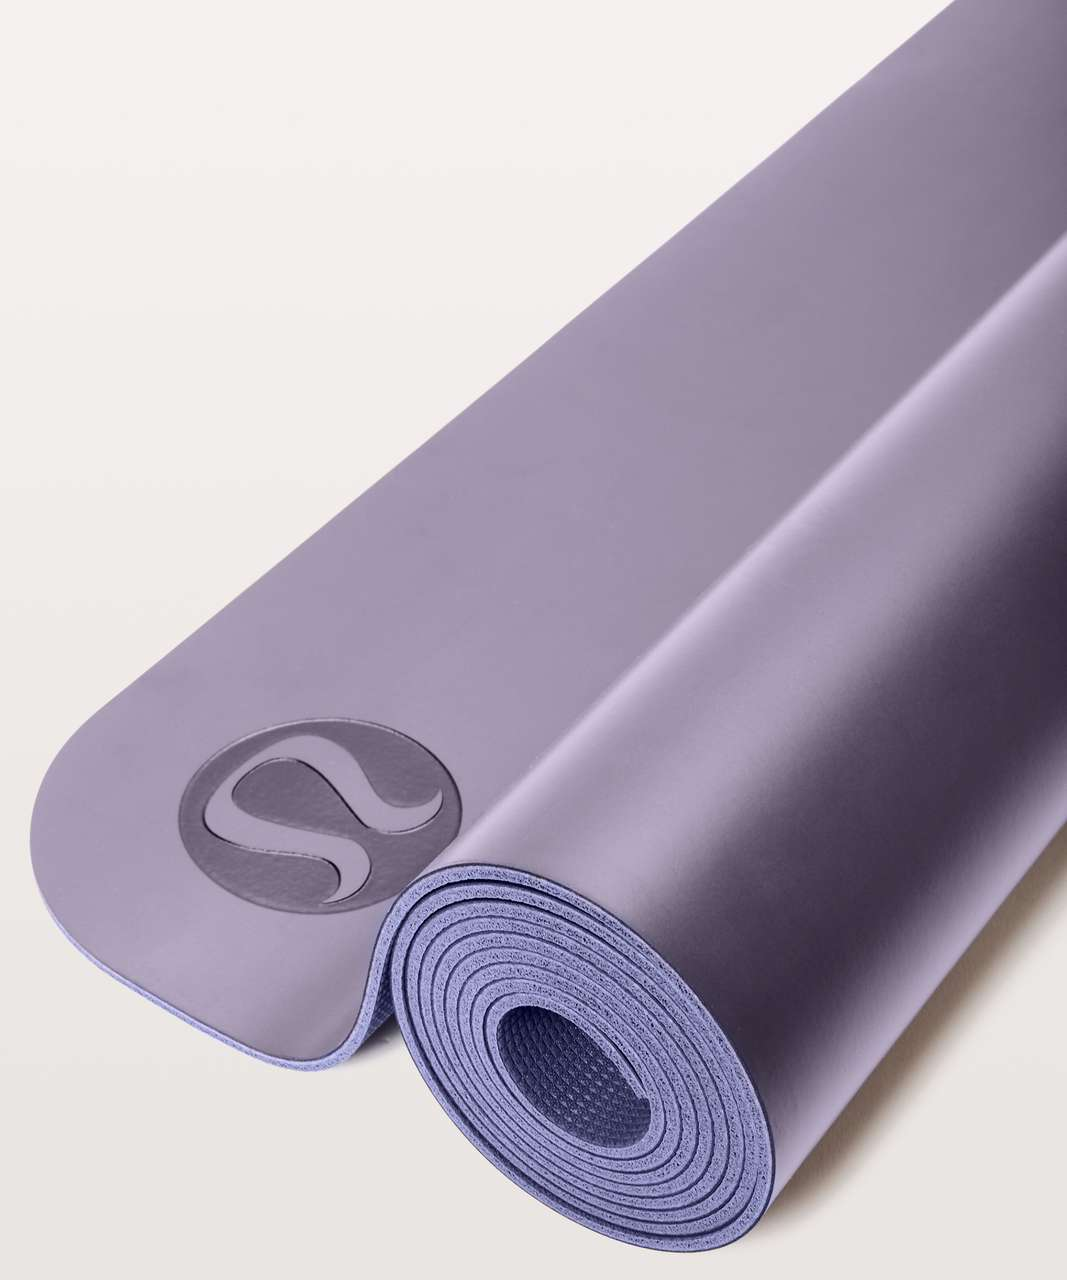 Lululemon The Reversible Mat 3mm - Nightfall / Brilliant Blue